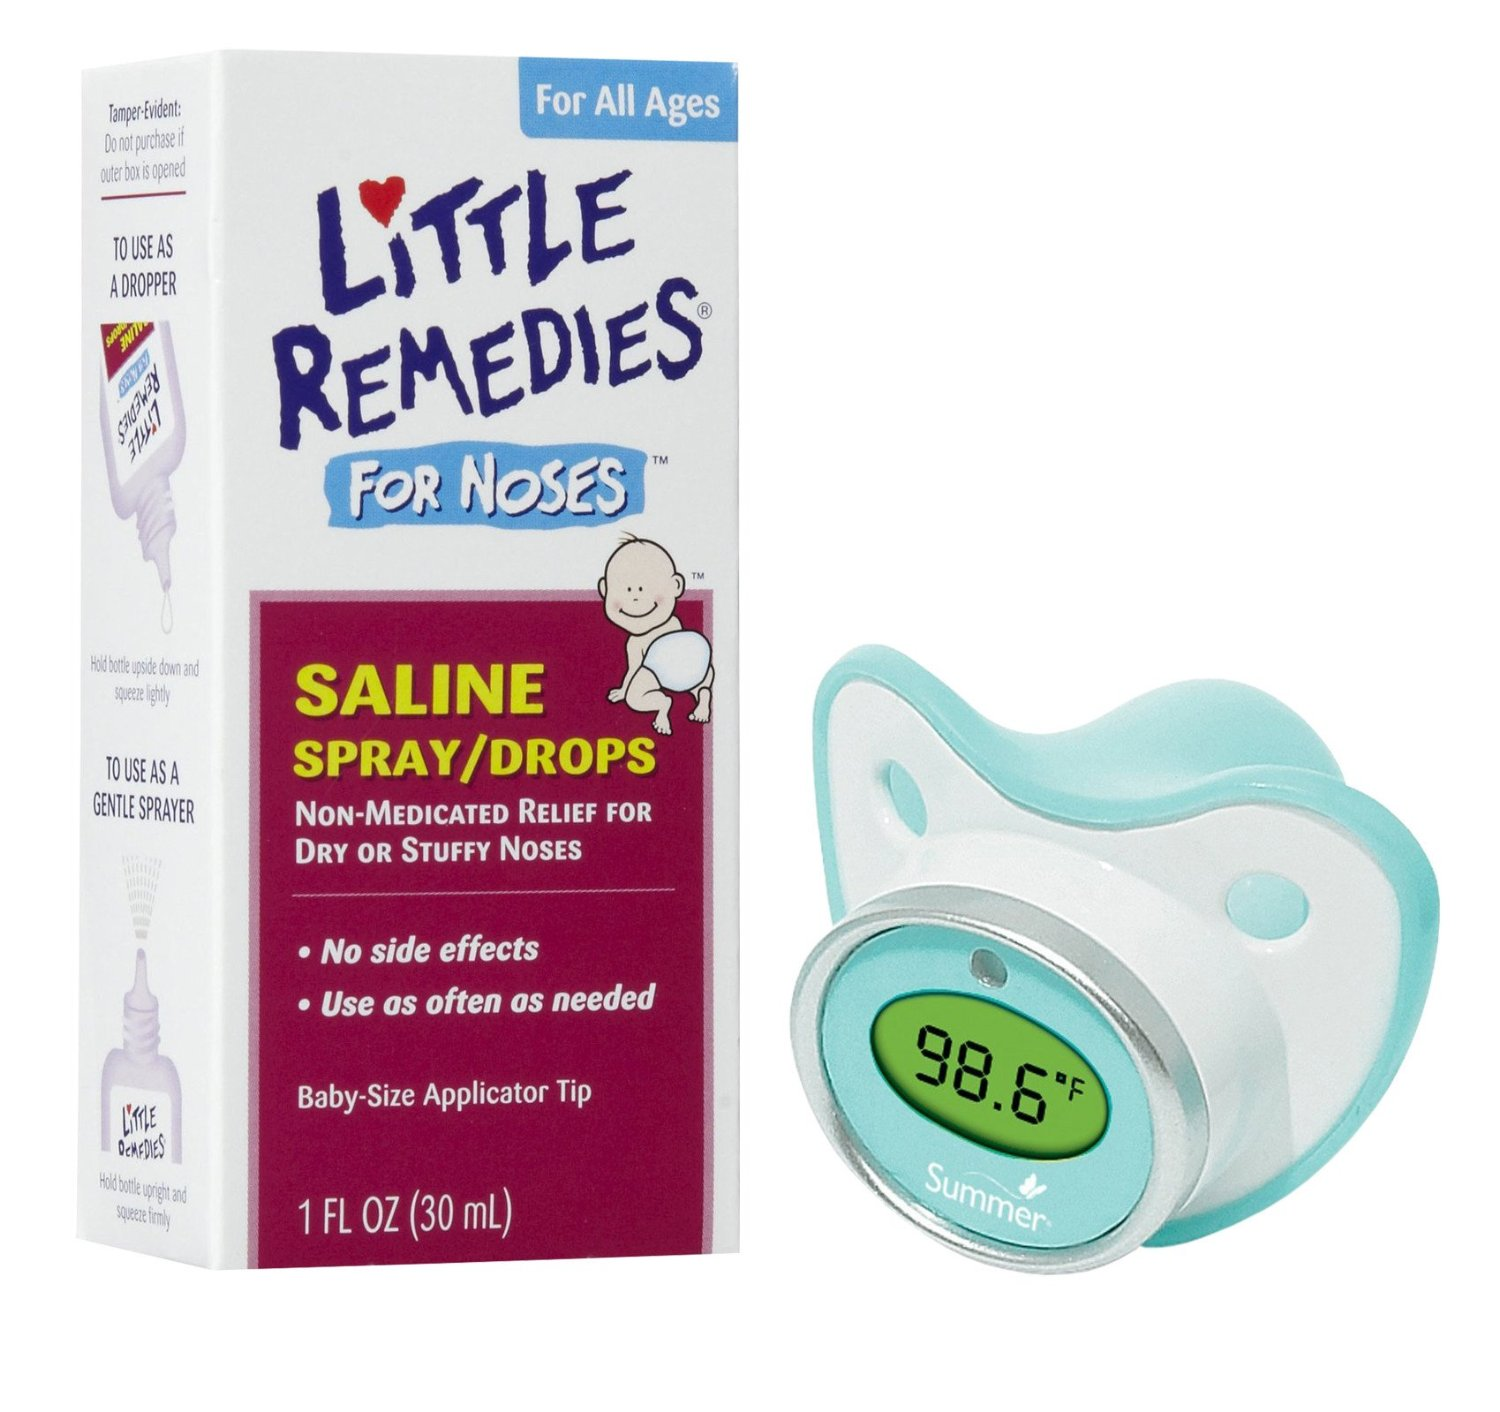 Little Remedies Saline Spray/Drops for Stuffy Noses with Pacifier Thermometer